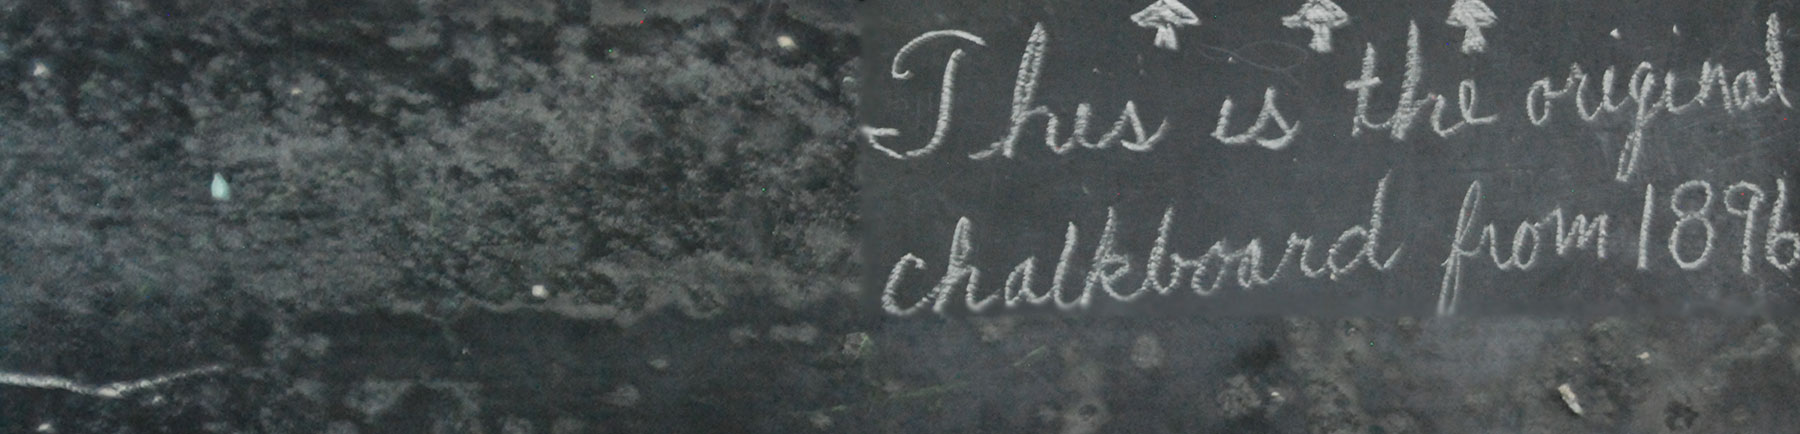 This is the original chalkboard from 1896